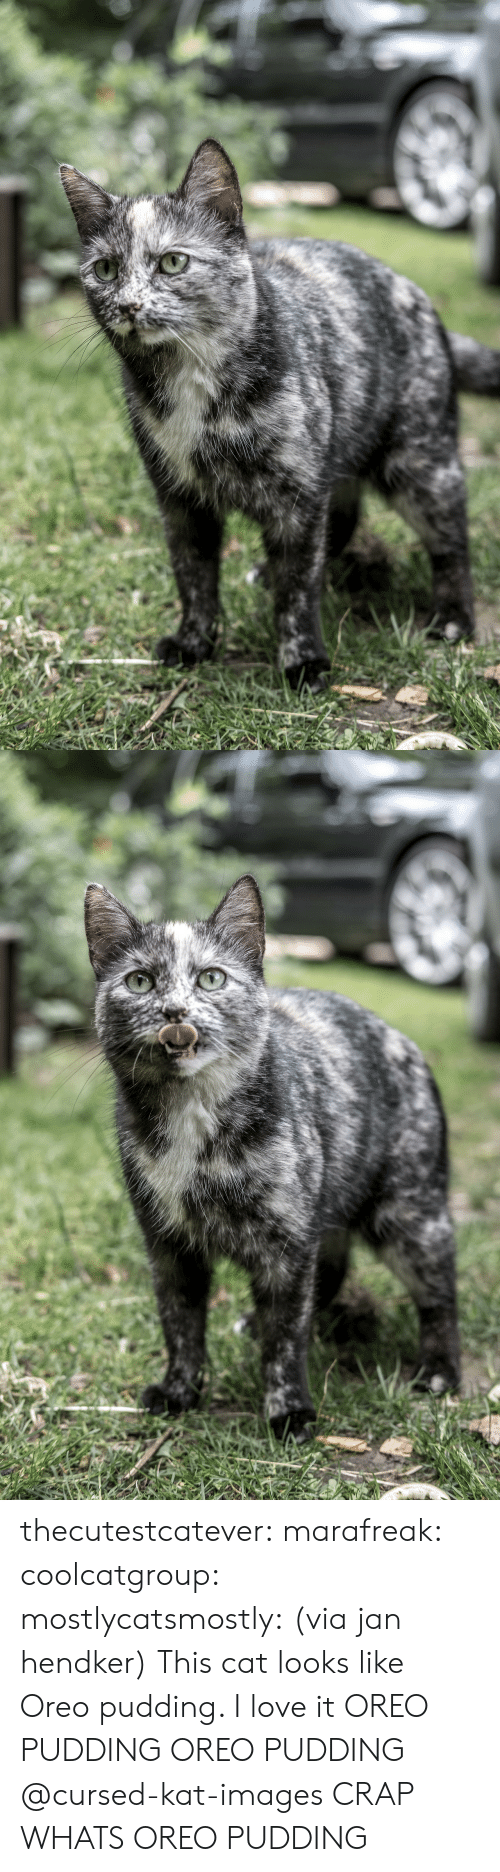 Love, Tumblr, and Blog: thecutestcatever:  marafreak:  coolcatgroup: mostlycatsmostly: (via jan hendker) This cat looks like Oreo pudding. I love it   OREO PUDDING OREO PUDDING    @cursed-kat-images   CRAP WHATS OREO PUDDING